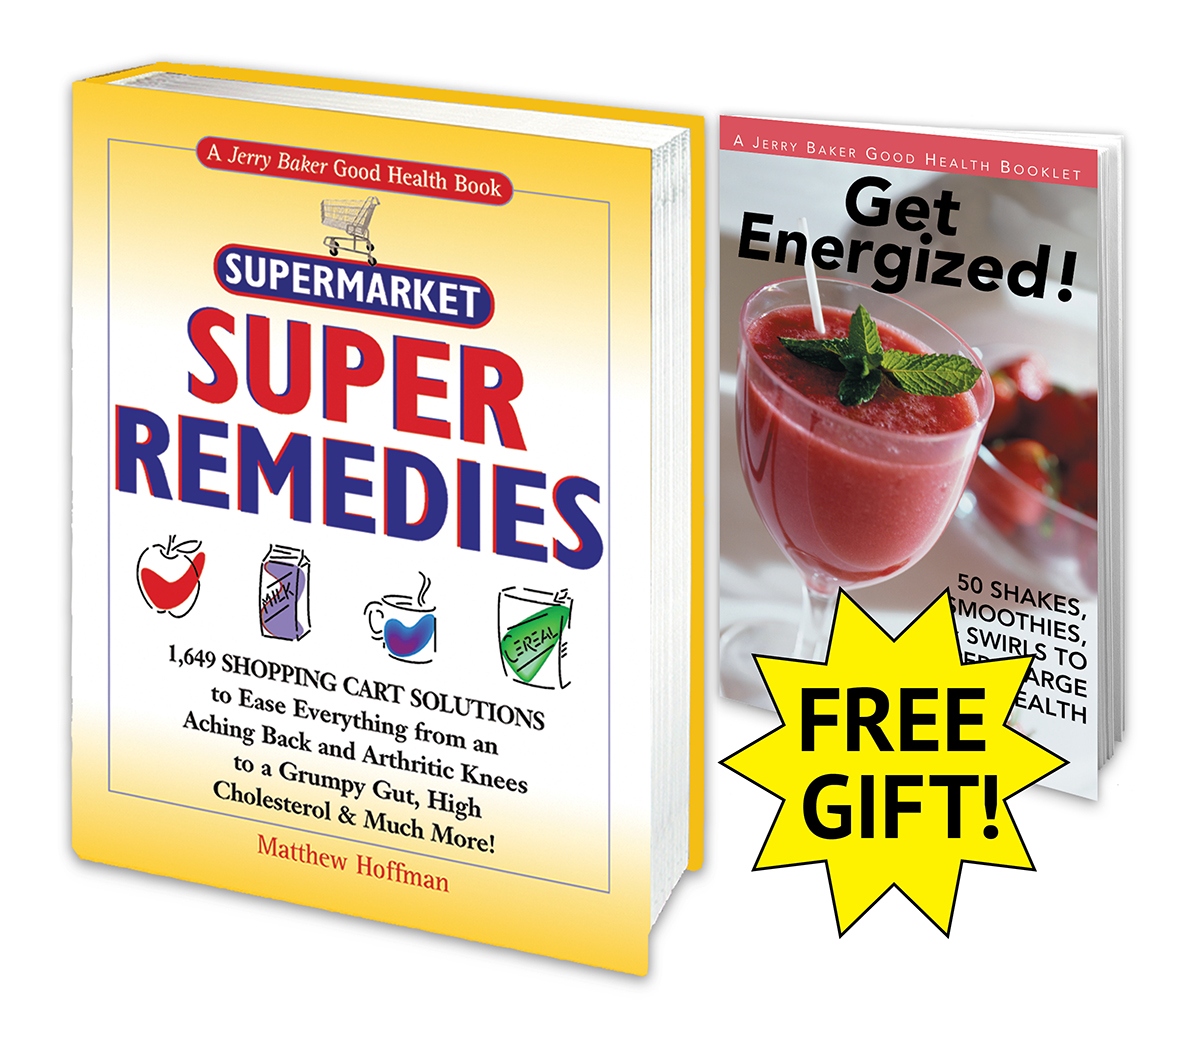 Supermarket Super Remedies